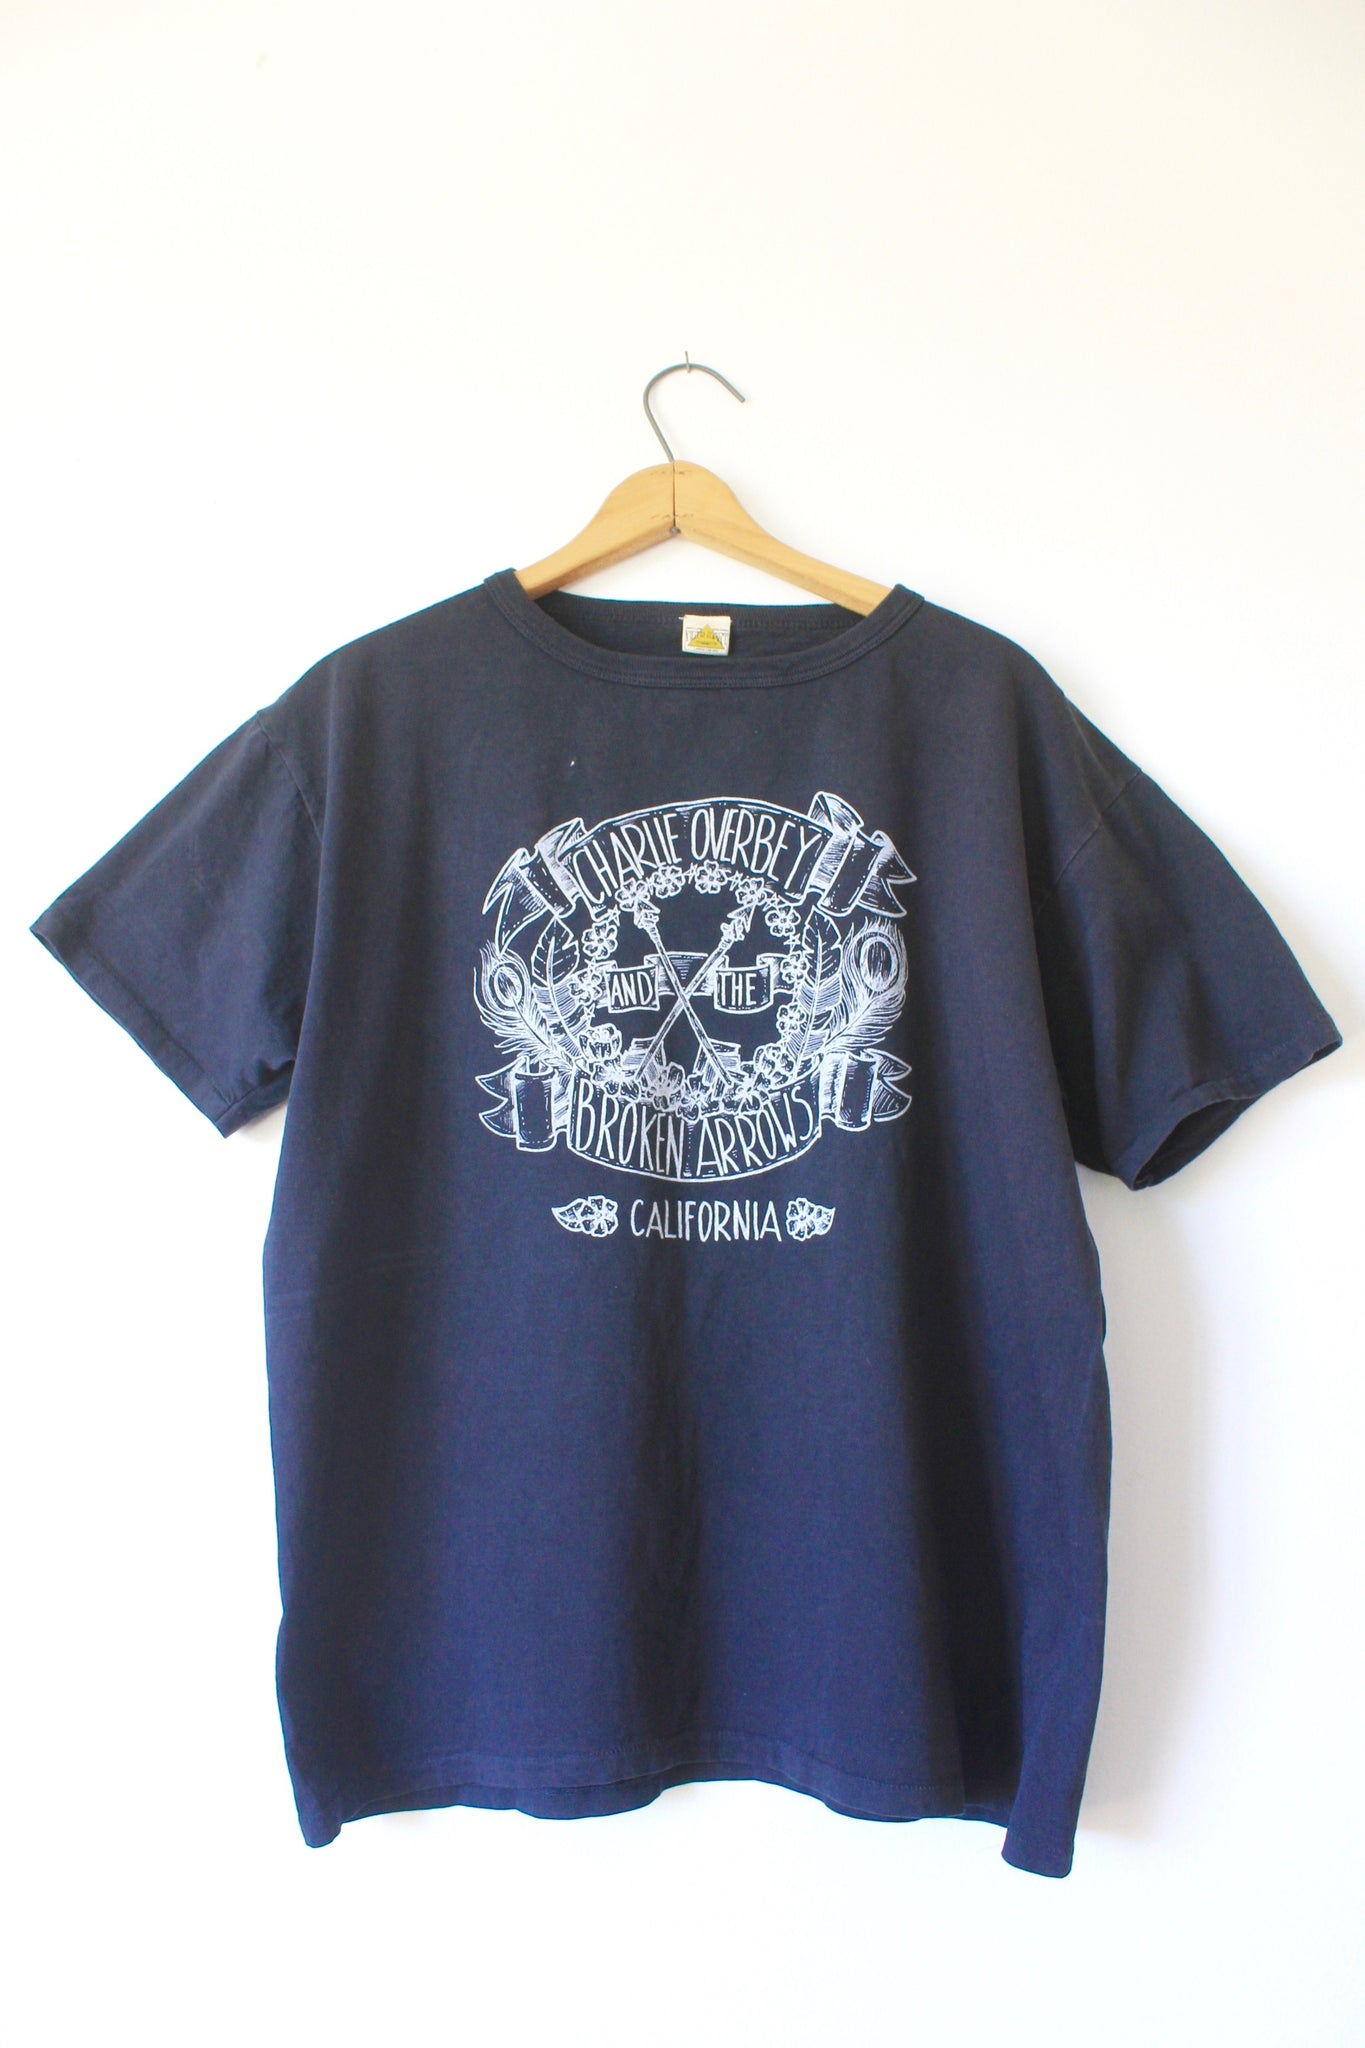 Charlie Overbey & The Broken Arrows Limited Run Filth Mart Tee